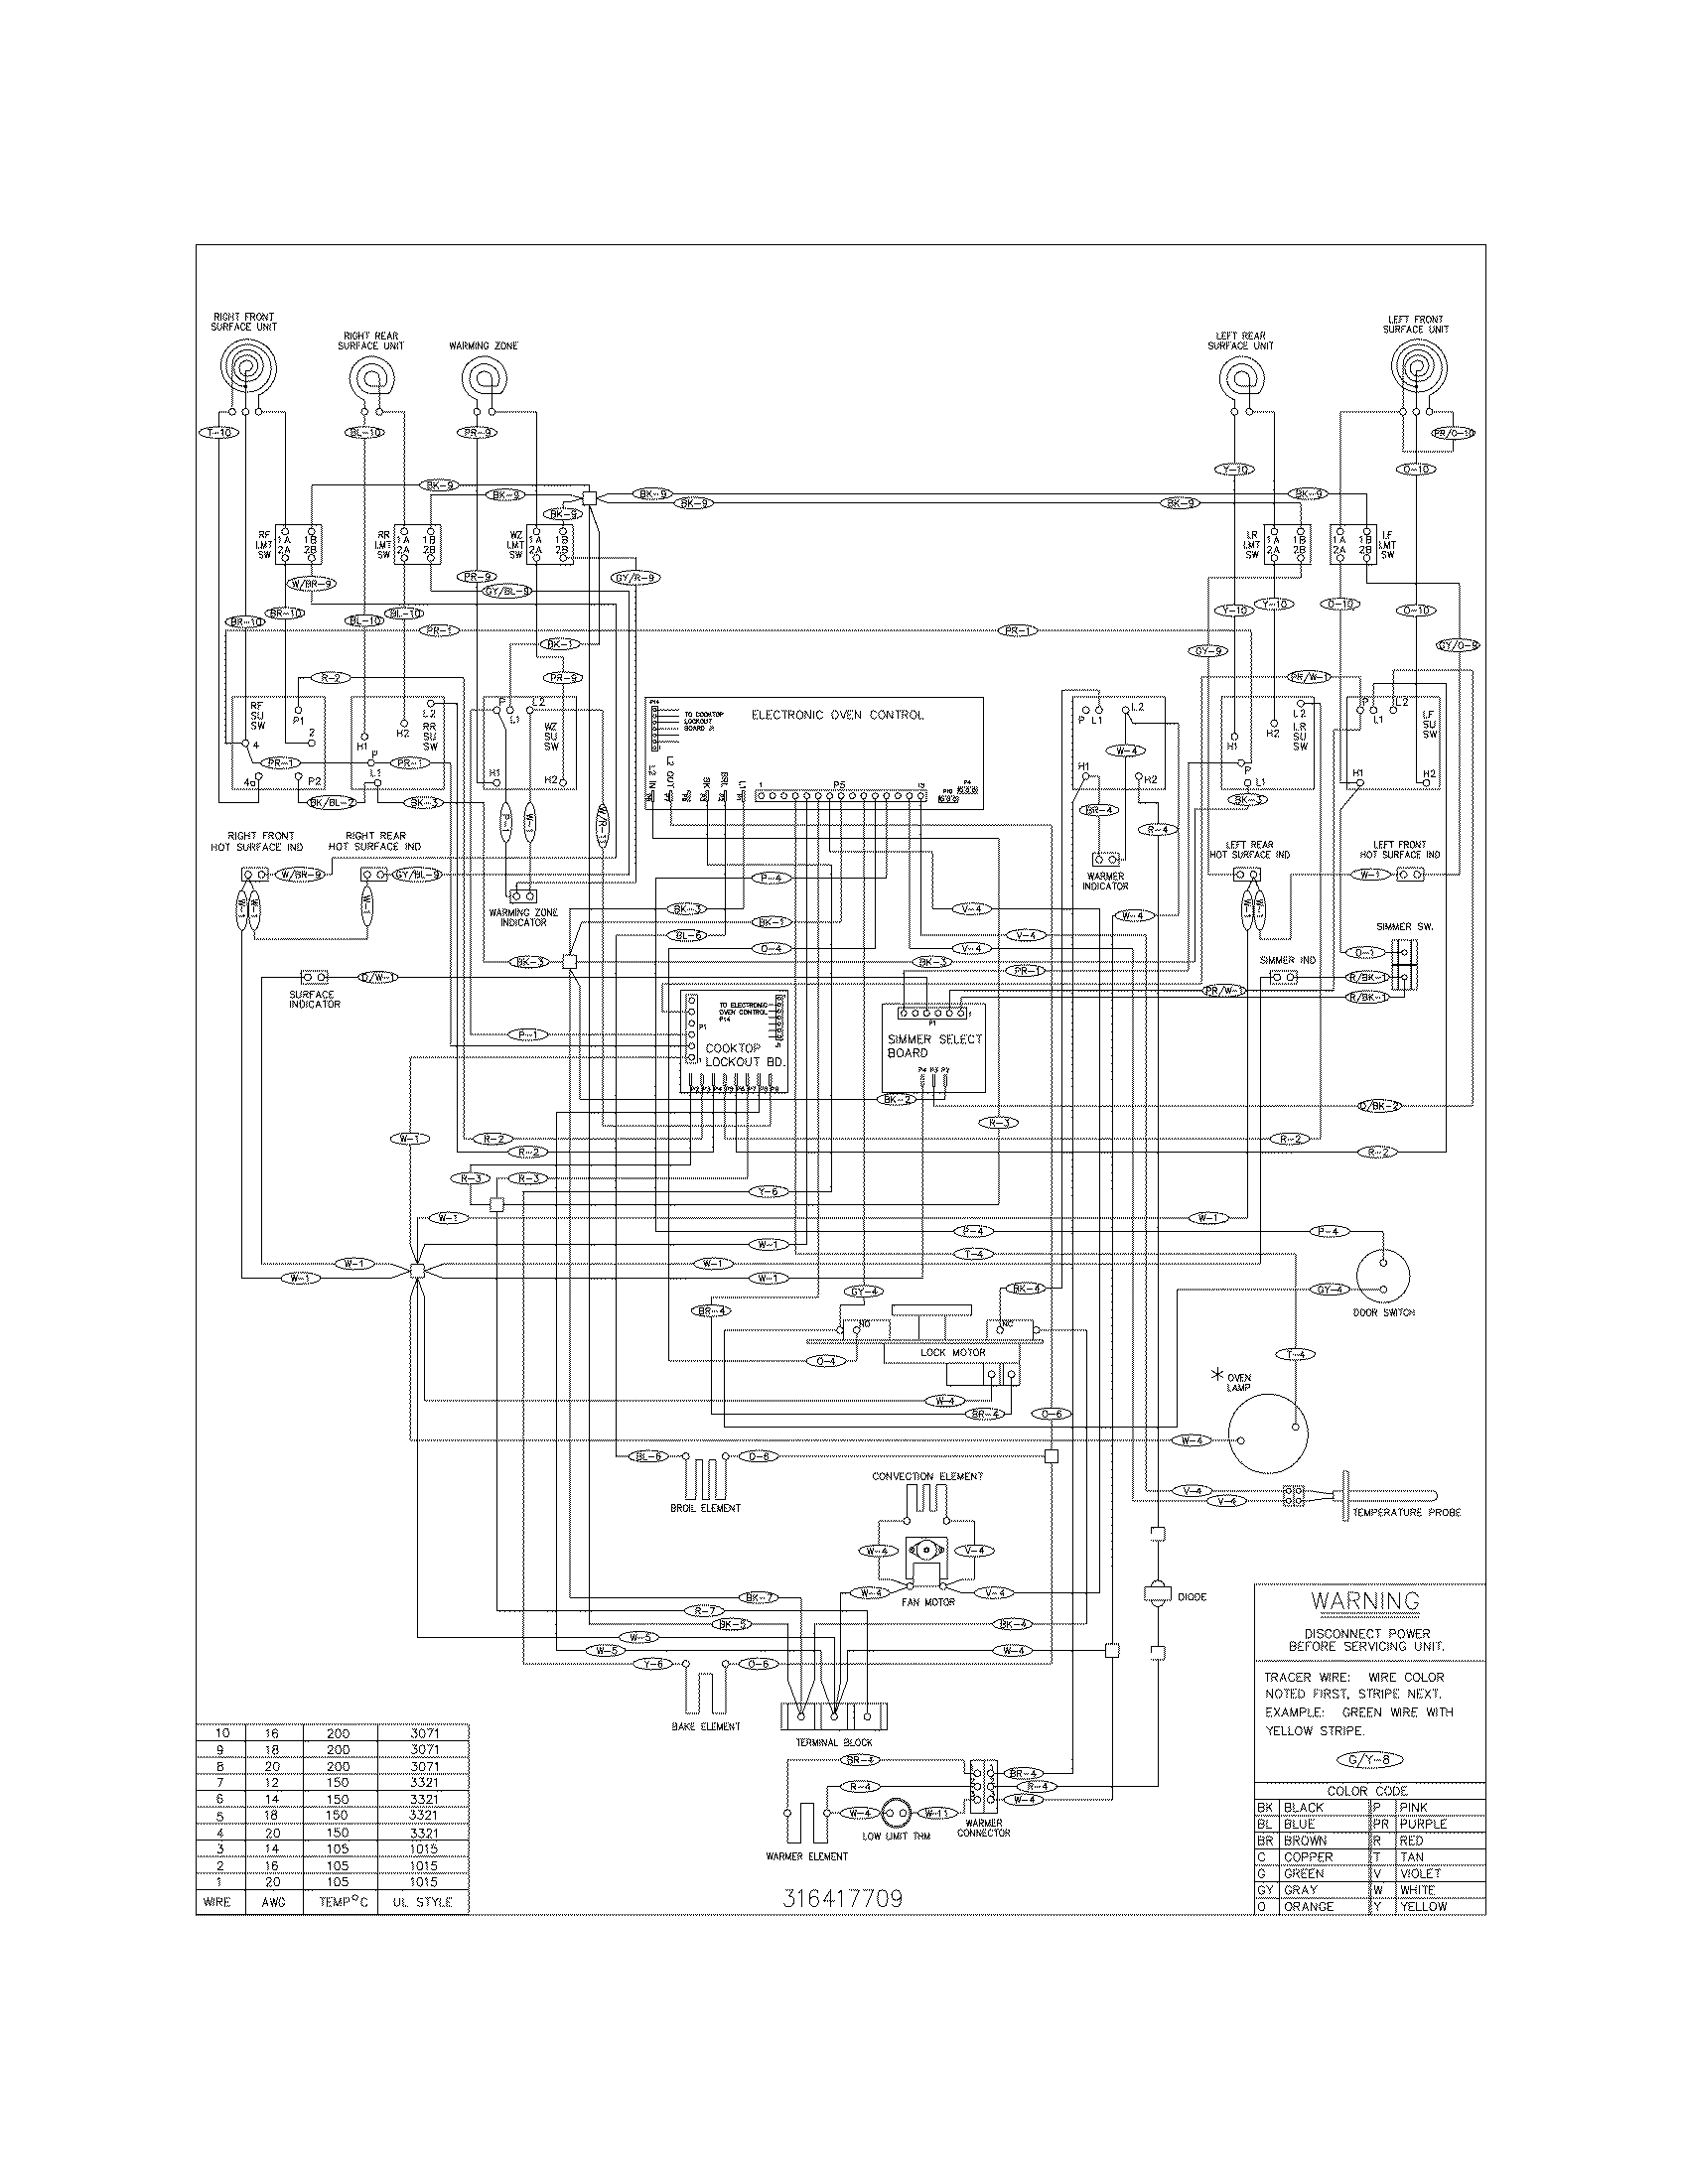 WIRING Tappan Appliances Wiring Diagram FULL Version HD Quality Wiring  Diagram - OKCWEBDESIGNER.KINGGO.FRokcwebdesigner kinggo fr